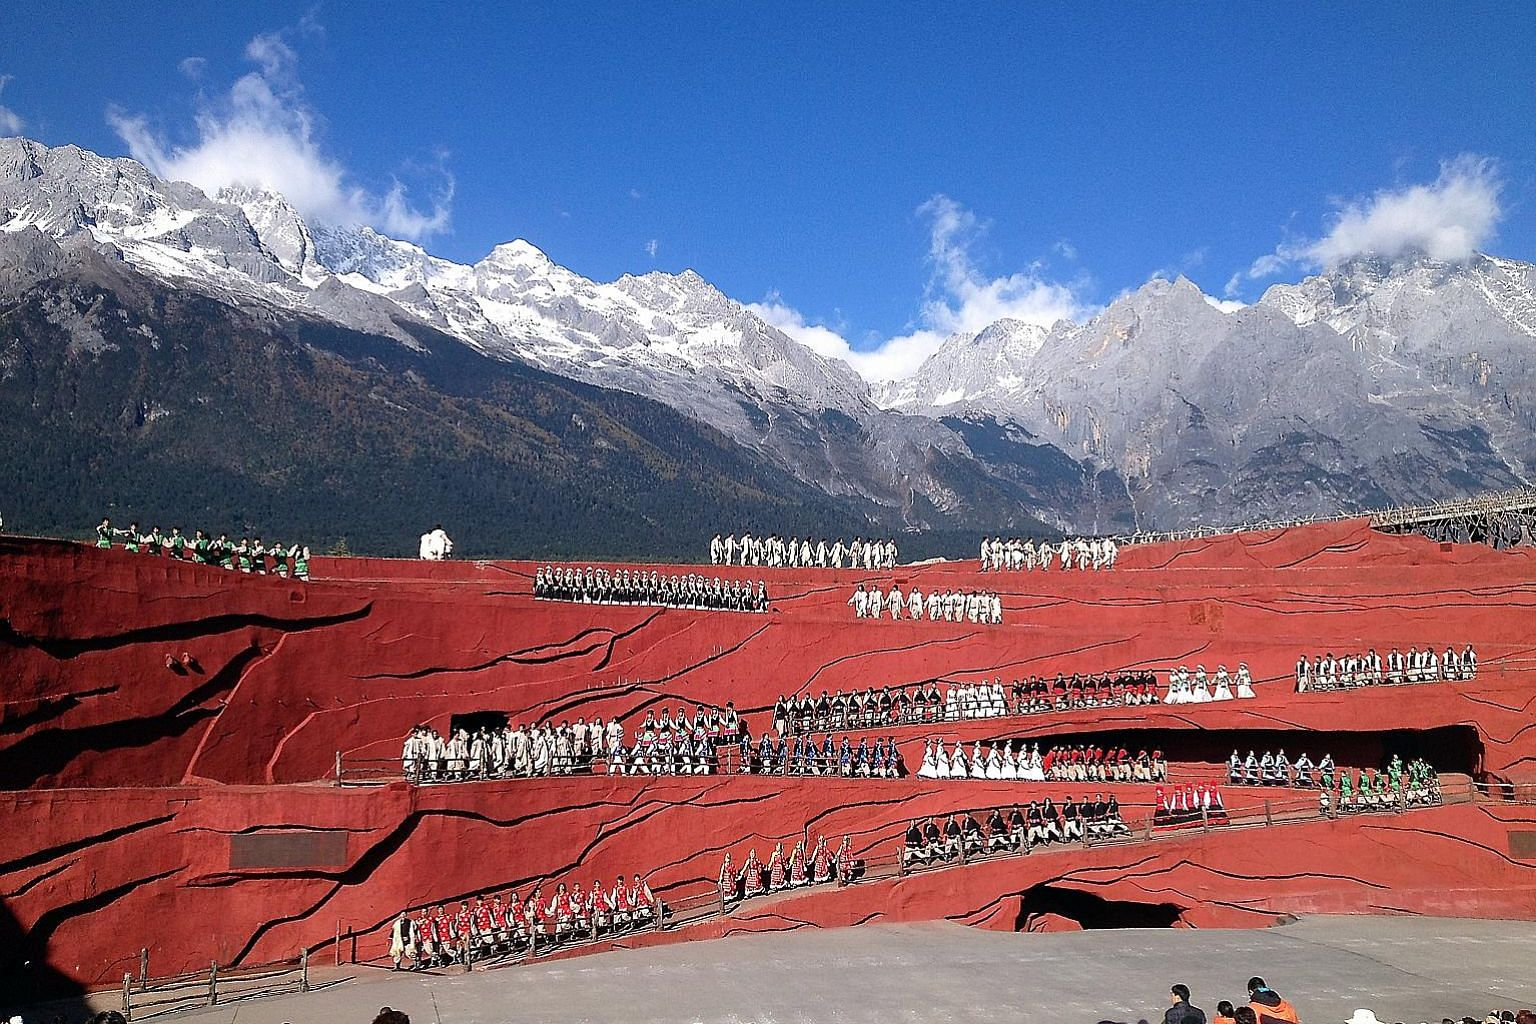 """The 500-man """"Impression Lijiang"""" show in China's Yunnan province features the Jade Dragon Snow Mountain in the background. It is directed by renowned film director Zhang Yimou, and is a main tourist attraction in Lijiang."""